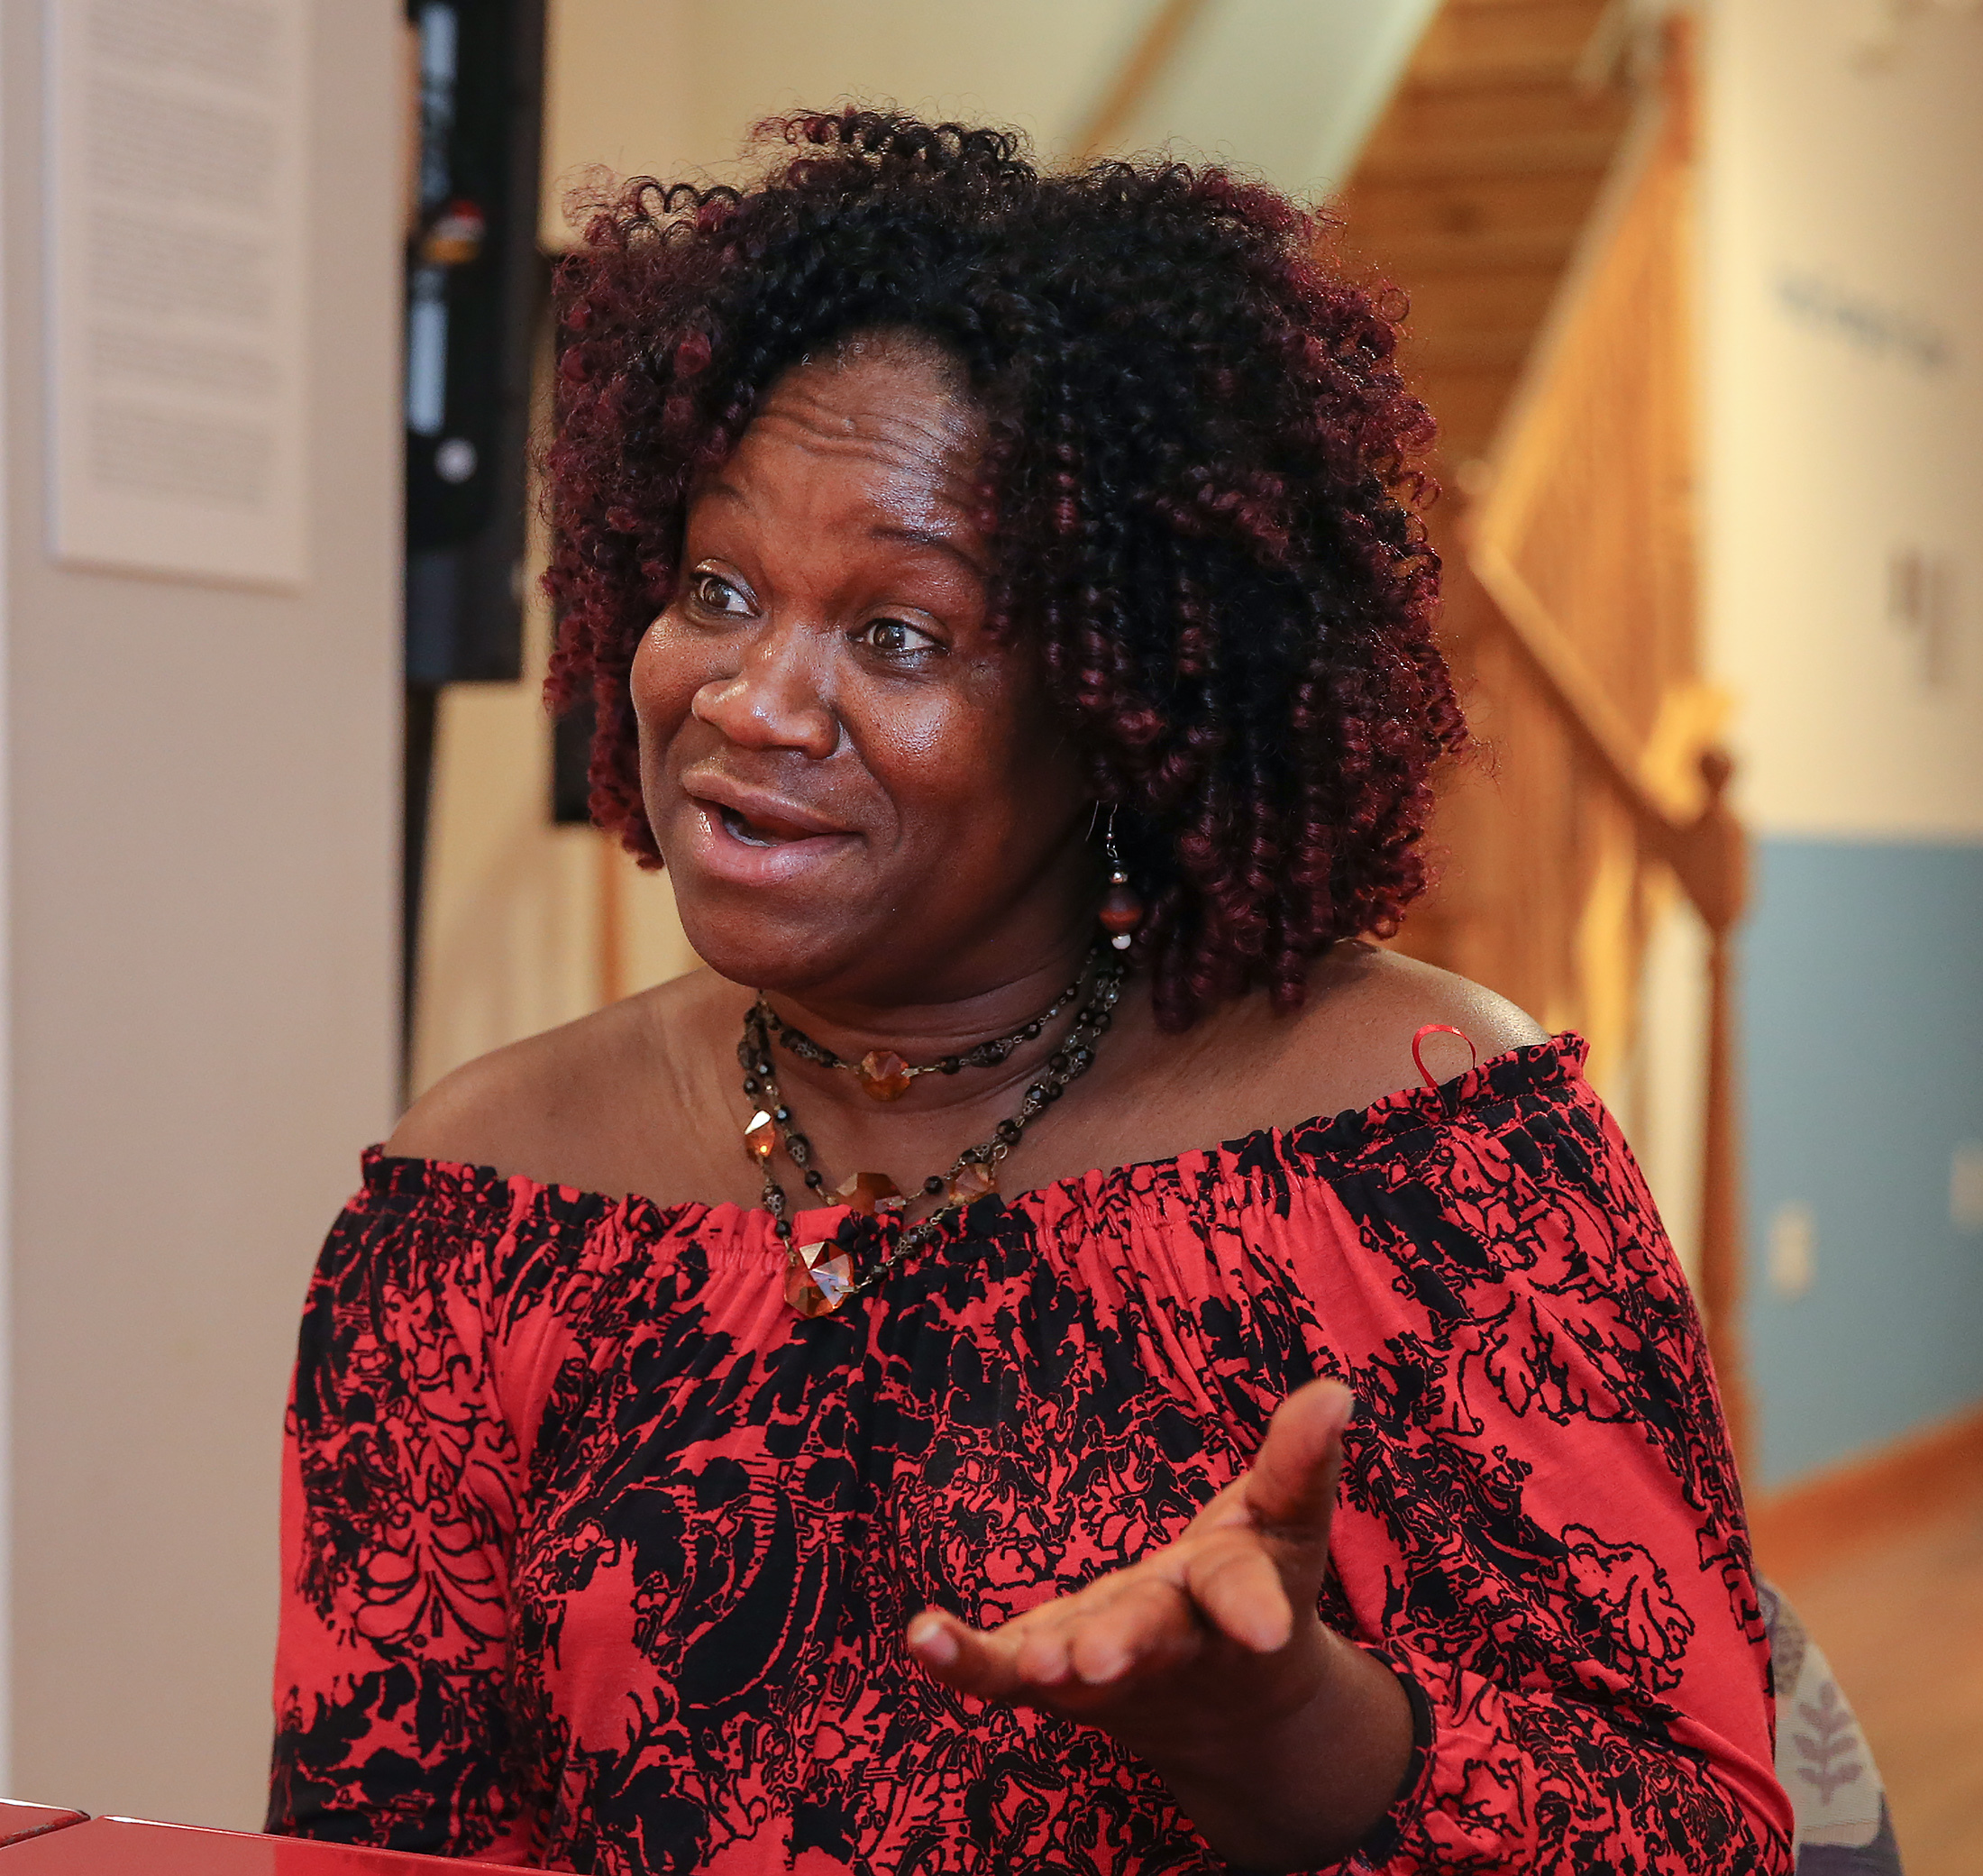 Liberian singer Fatu Gayflor, at the Philadelphia Folklore Project in West Philadelphia. She and three other Liberian singers are the subject of a new documentary, Because of the War, produced by the folklore project and premiering here on Sunday Oct. 15.